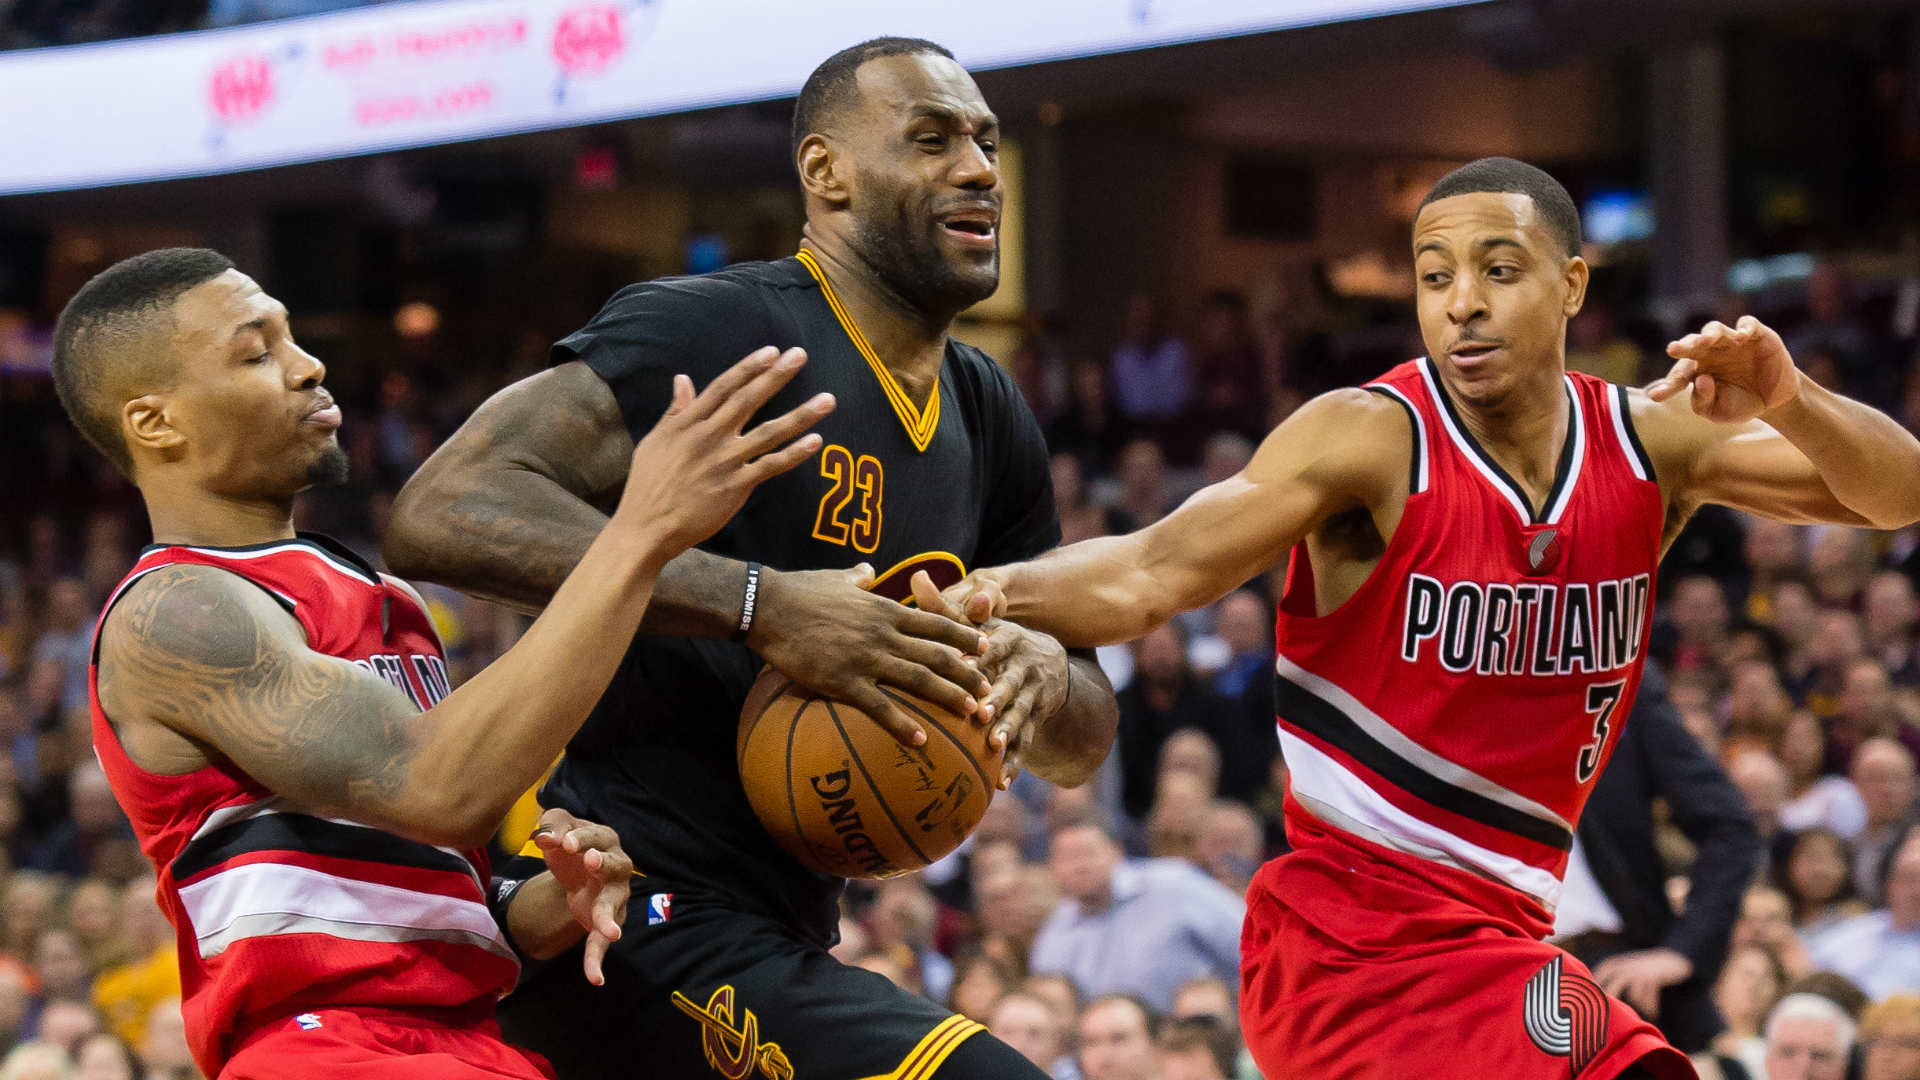 The Cleveland Cavaliers and the Portland Trail Blazers will meet for the final time this season